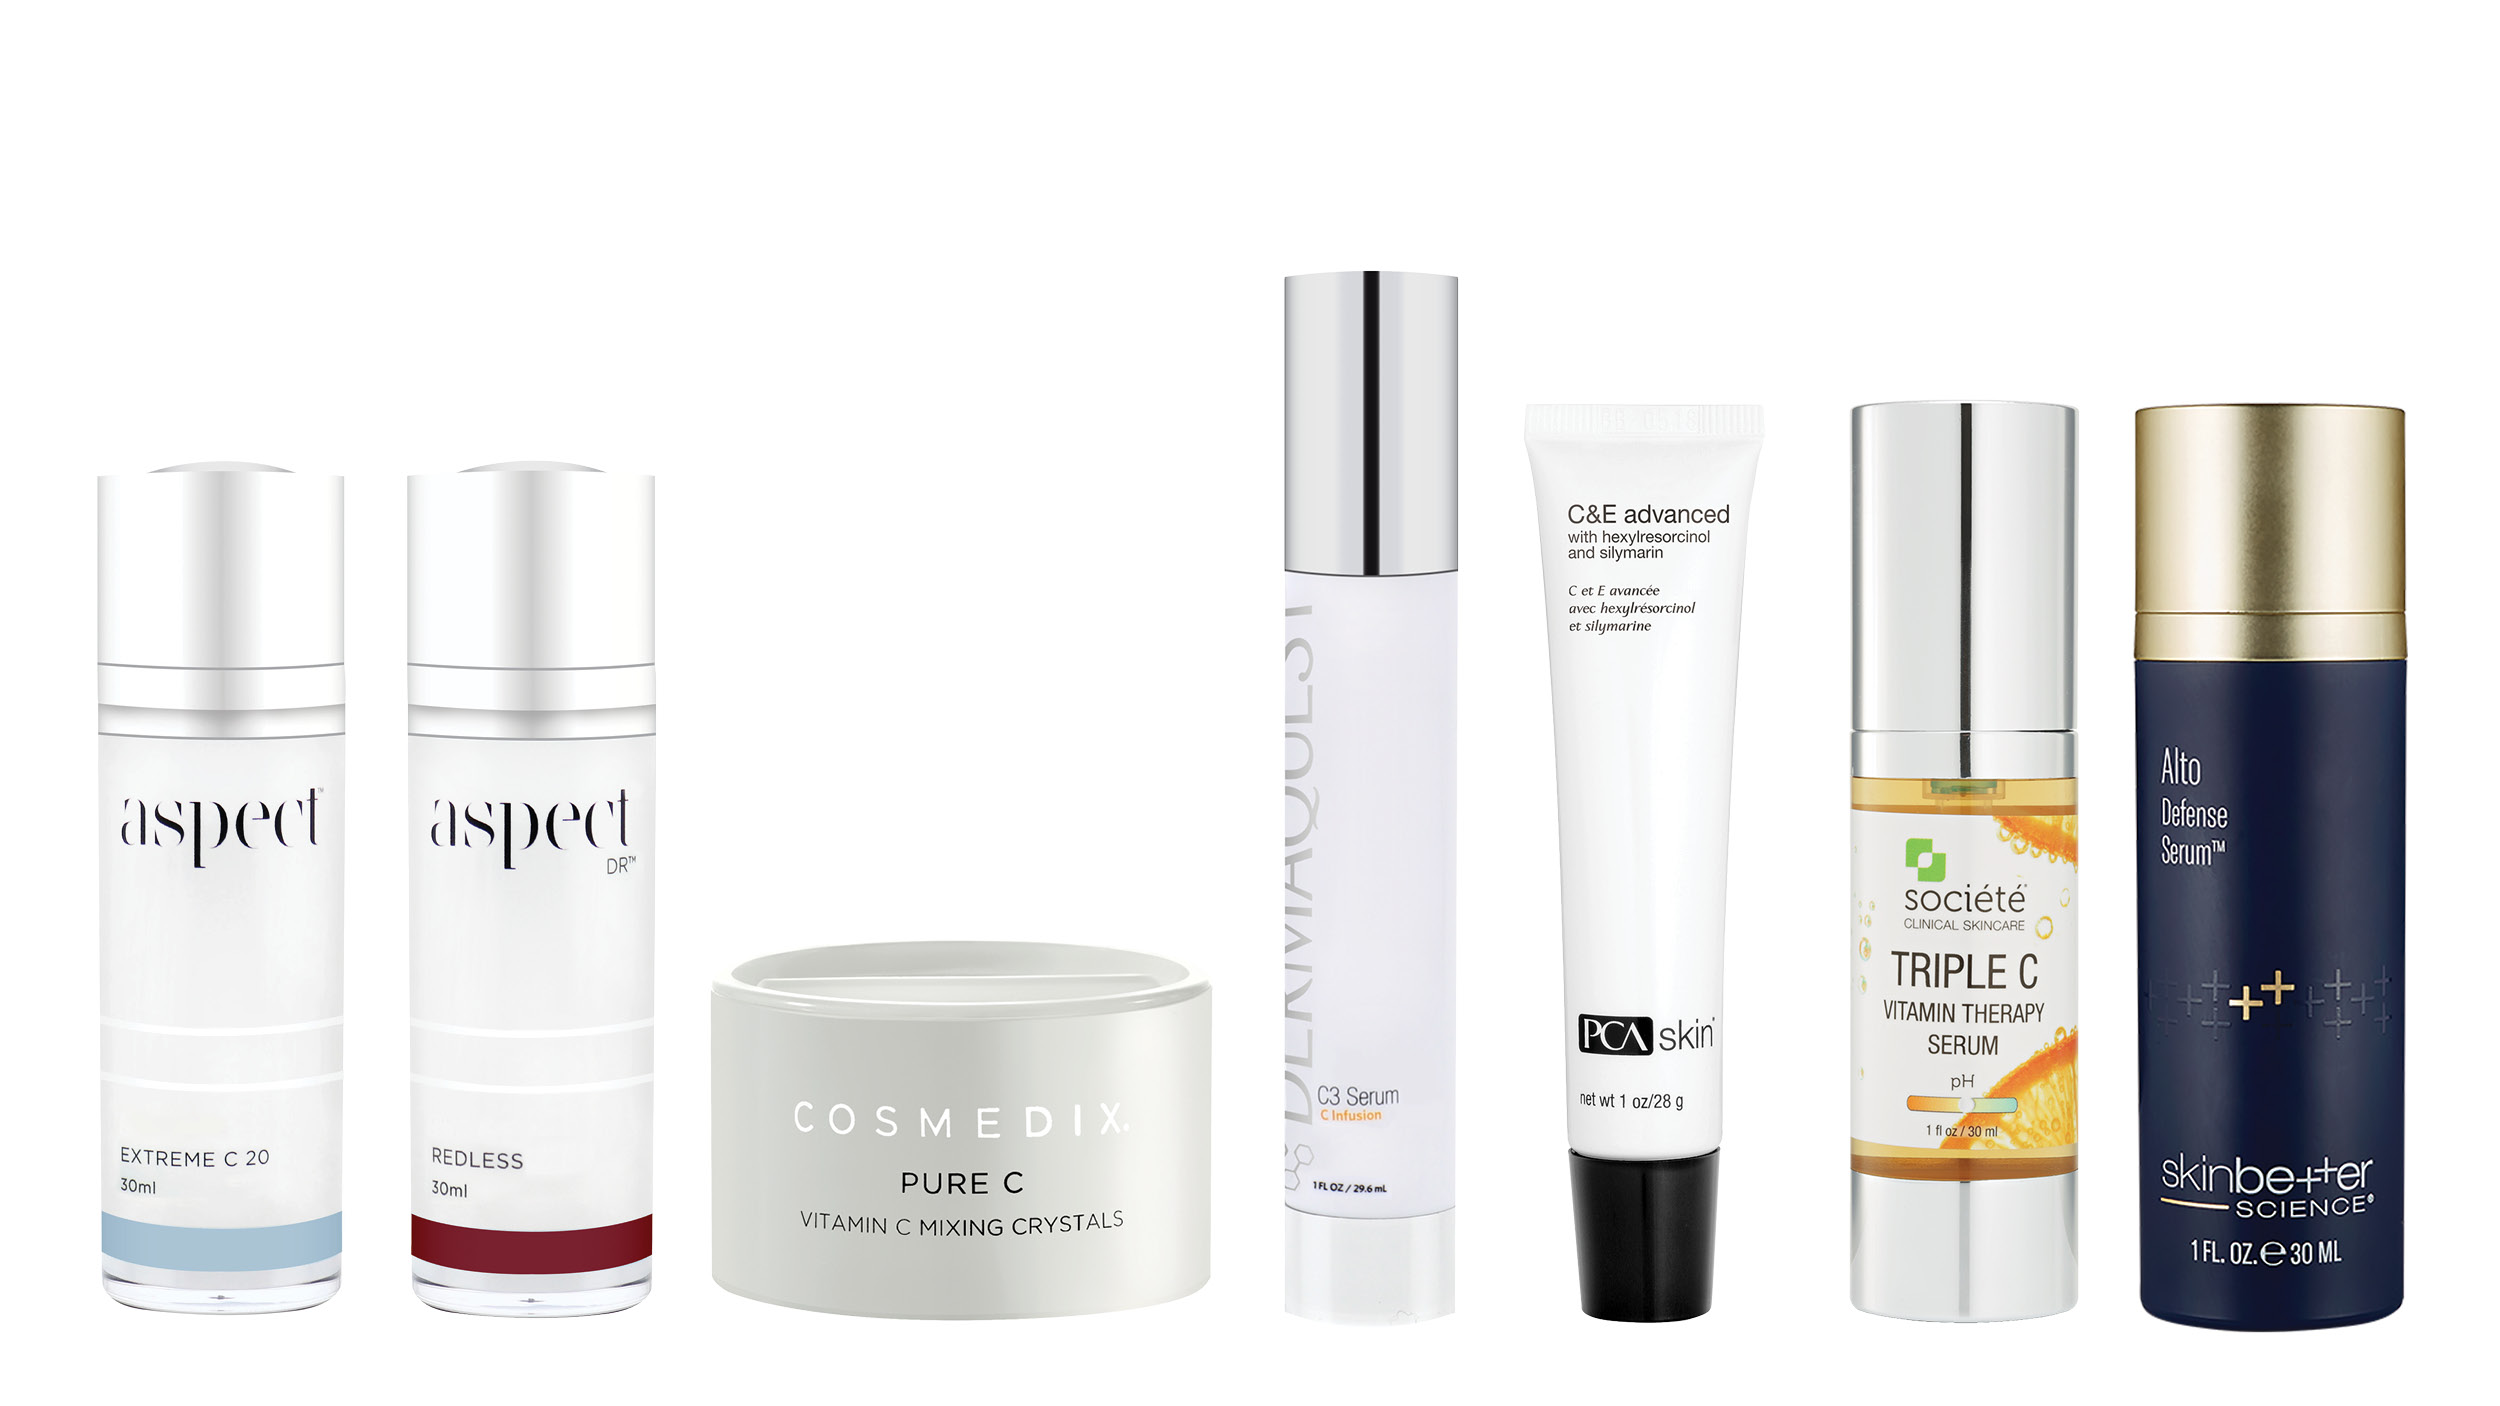 The AST Antioxidant skincare lineup. Aspect Dr, Cosmedix, Dermaquest, PCA skin, Societe. Learn more about antioxidant skincare here.